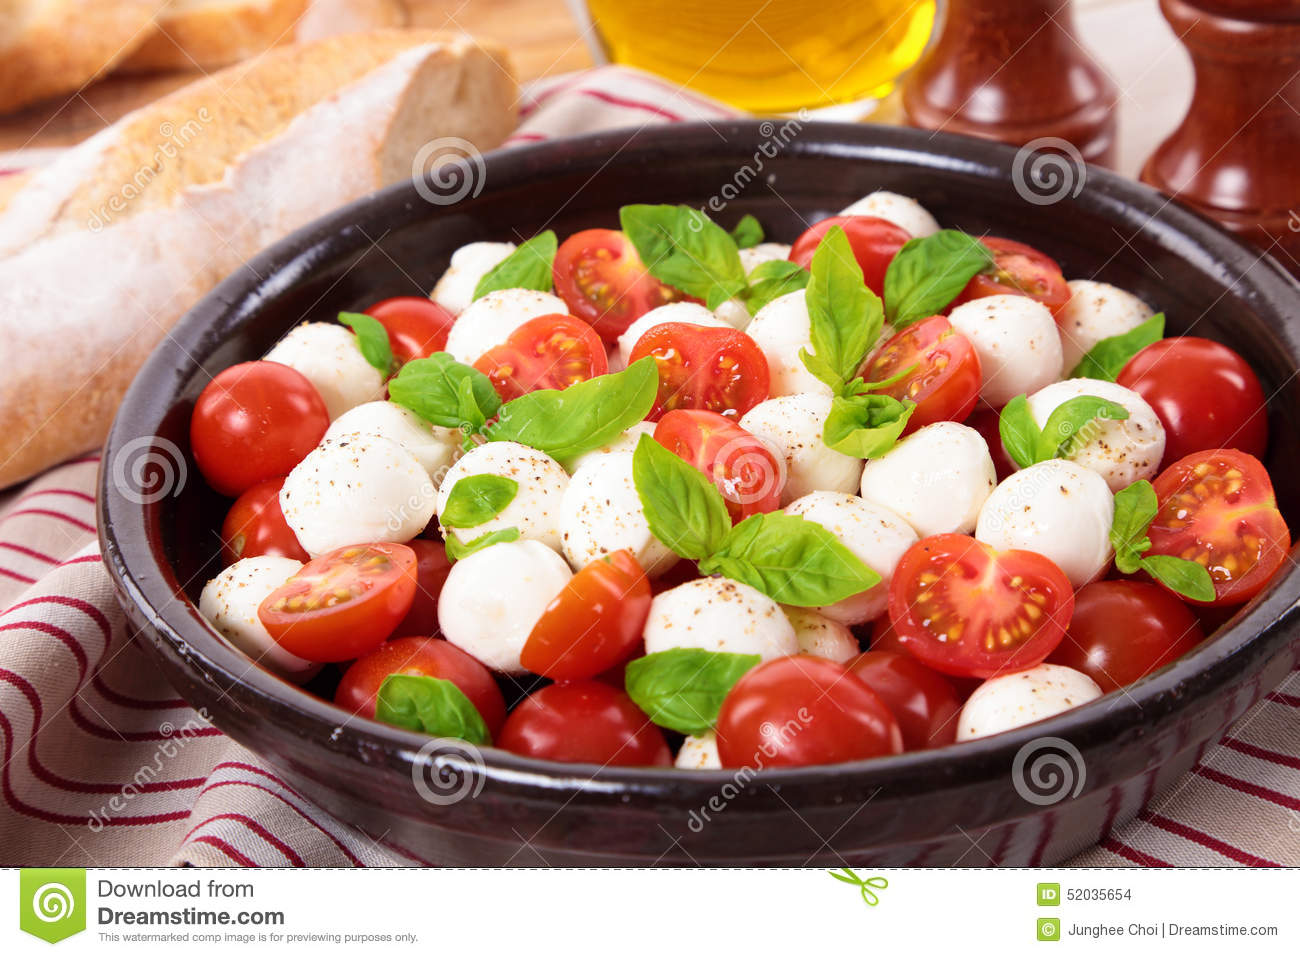 And Tomato Salad Cherry Tomatoes Cherry Tomato Mozzarella Basil